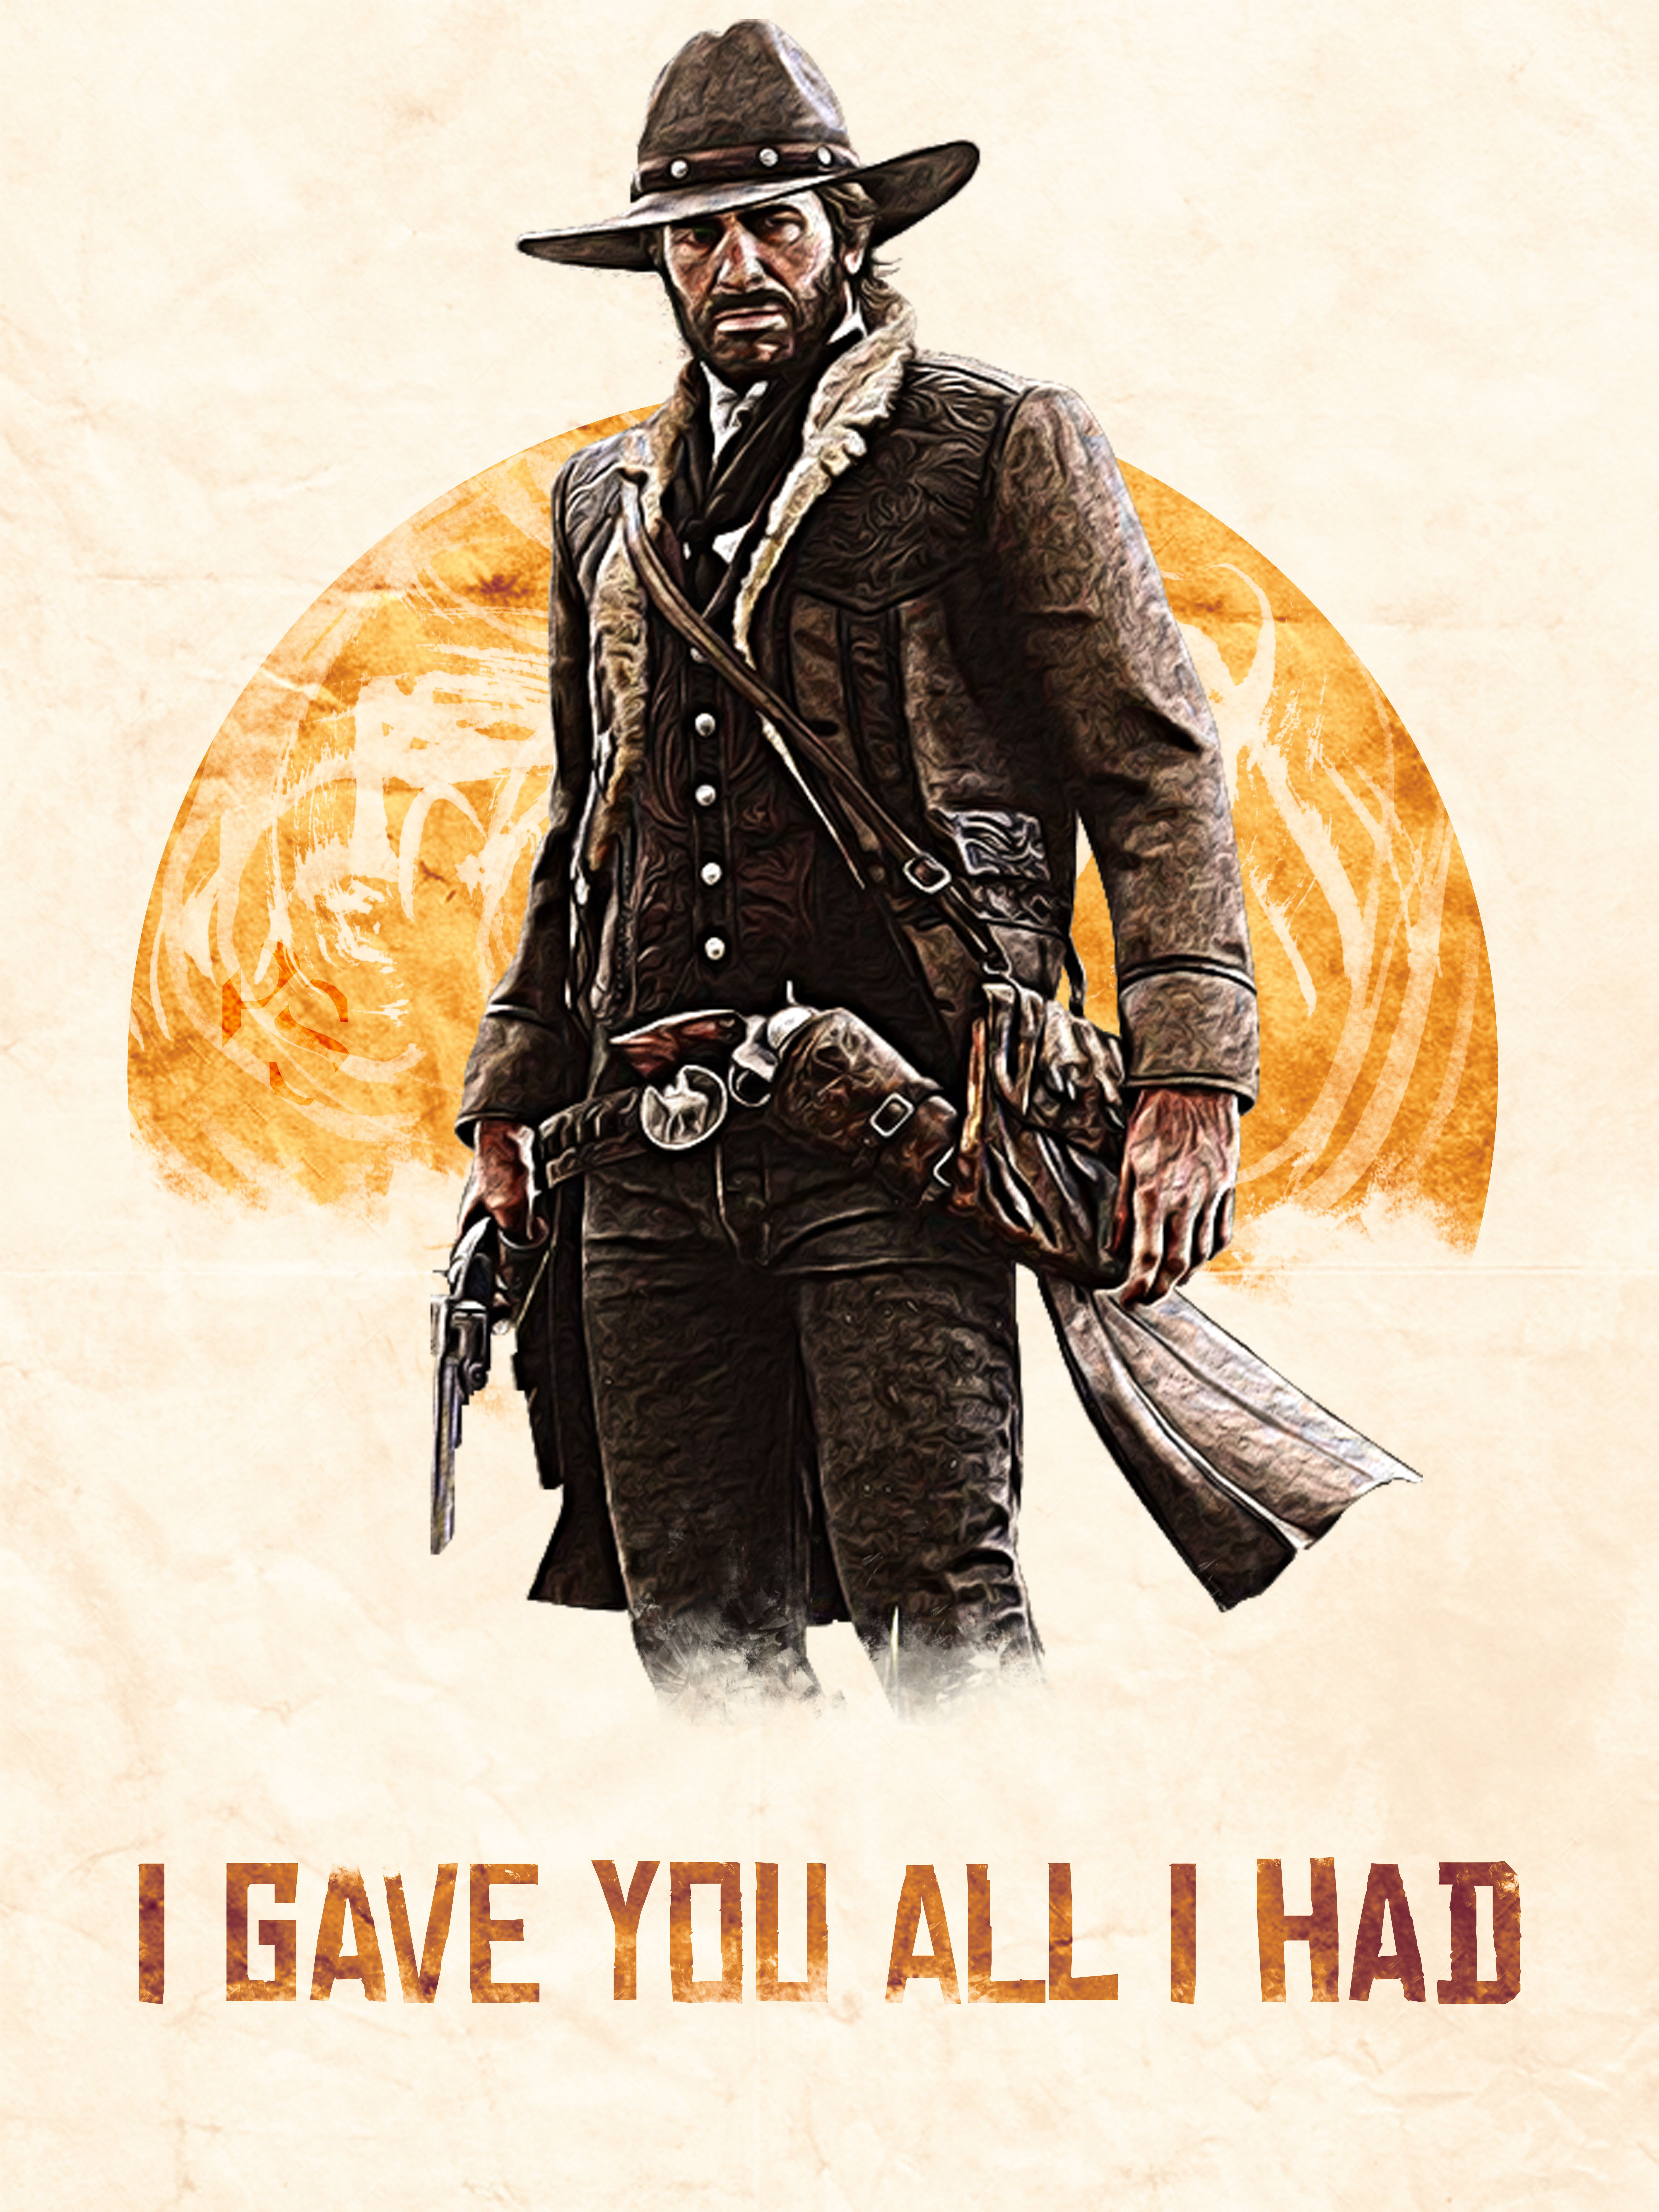 Arthur Morgan I Gave You All I Had Red Dead Redemption Artwork Red Dead Redemption Art Red Dead Redemption